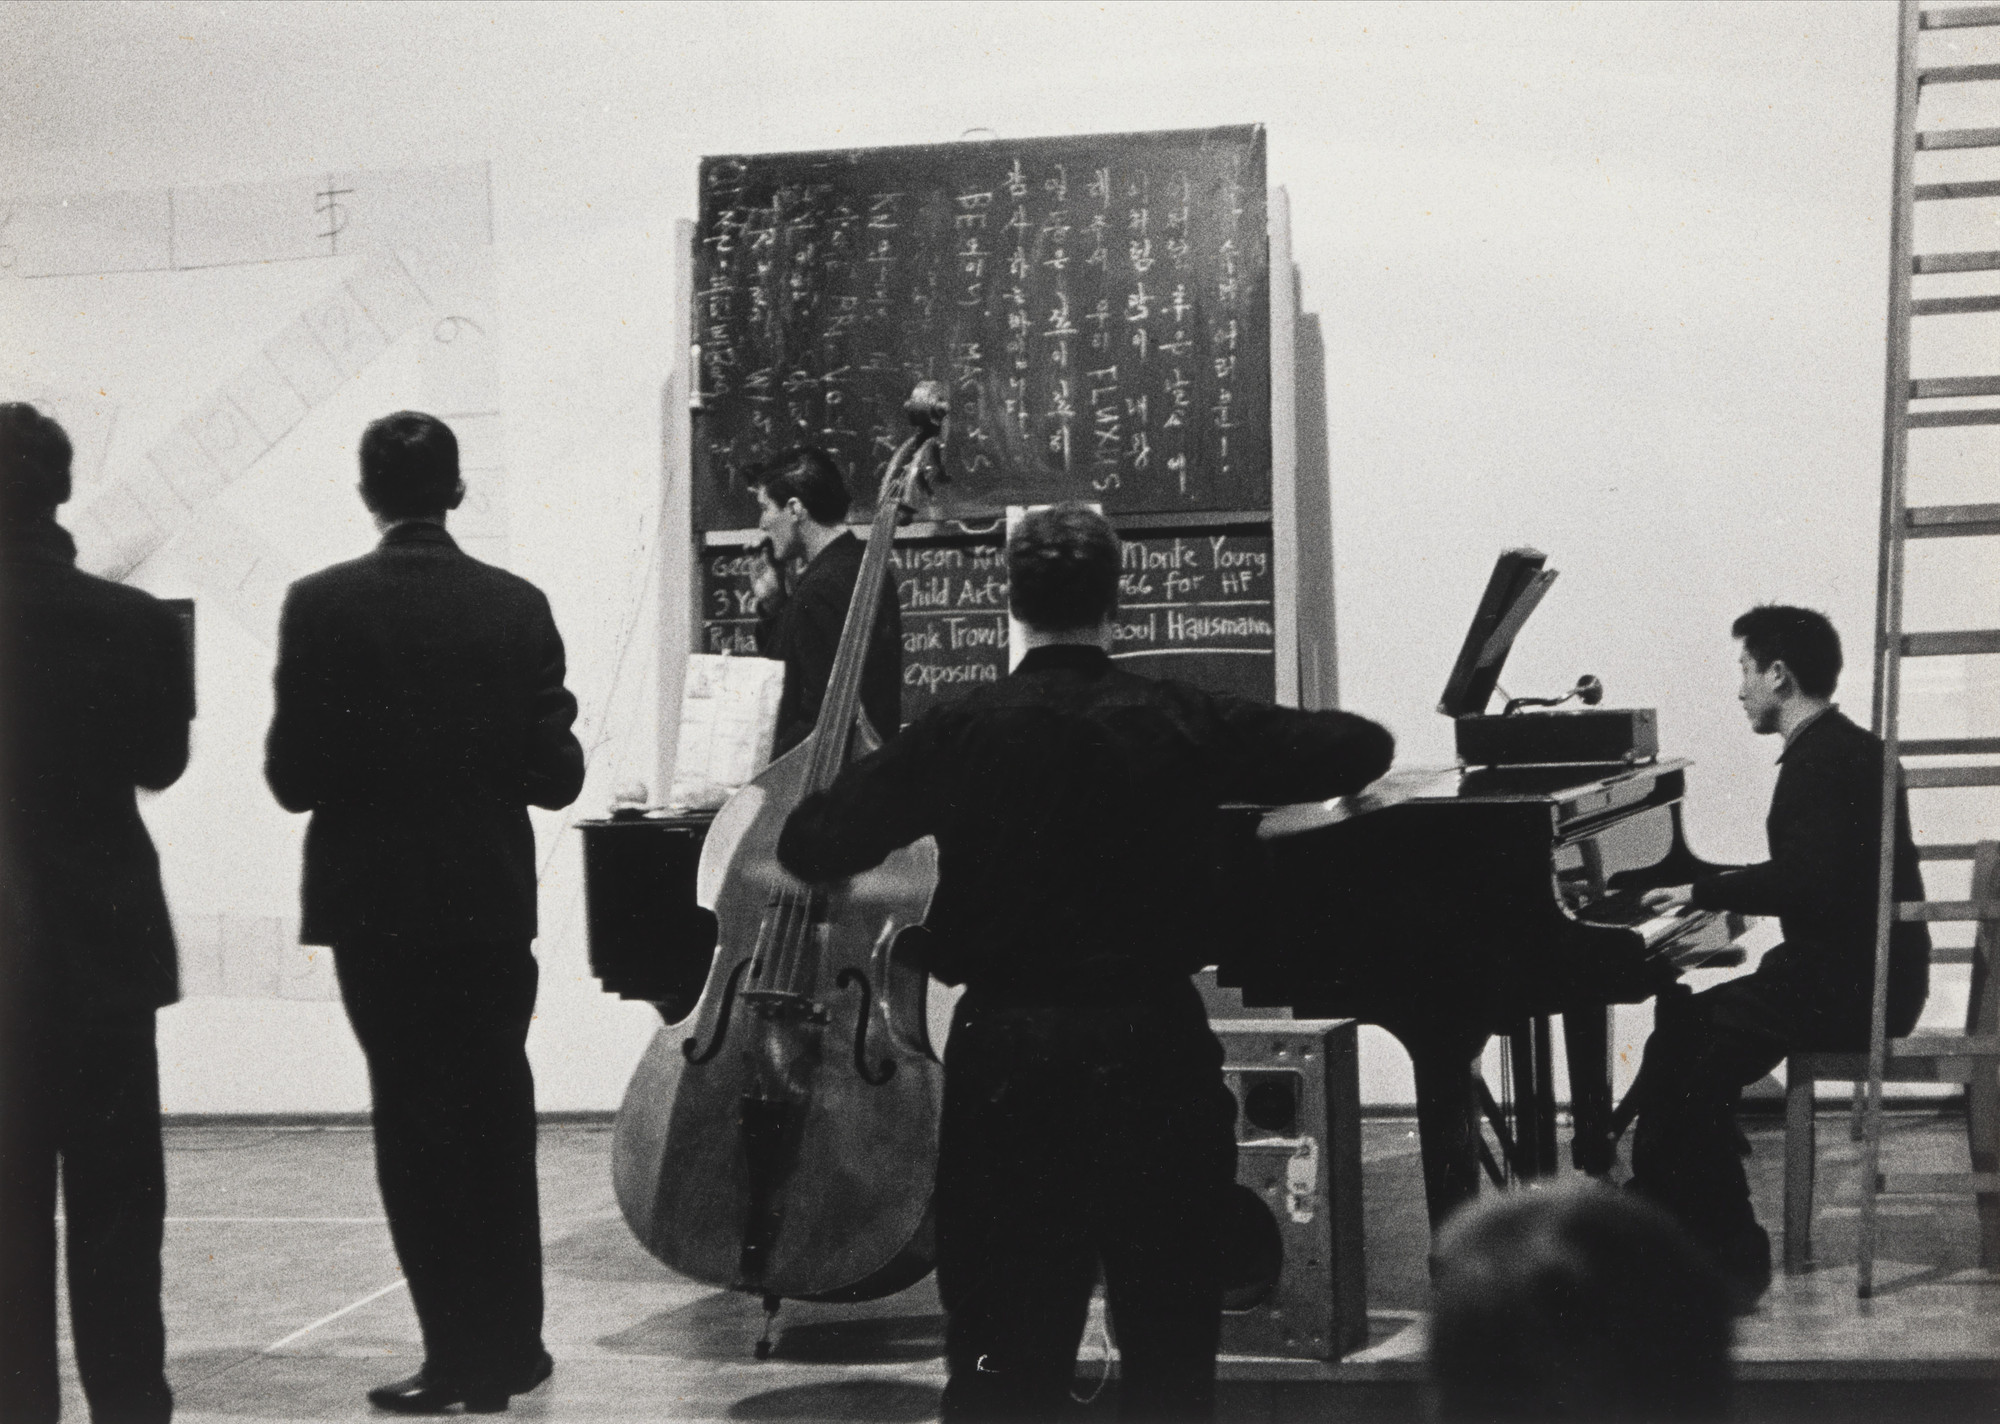 La Monte Young, Nam June Paik. Arabic Numeral (Any Integer) for Henry Flynt, and other simultaneous performances, performed during Festum Fluxorum/Fluxus/Musik und Antimusik/Das Instrumentale Theater, Staatliche Kunstakademie, Düsseldorf, February 2-3, 1963. 1963